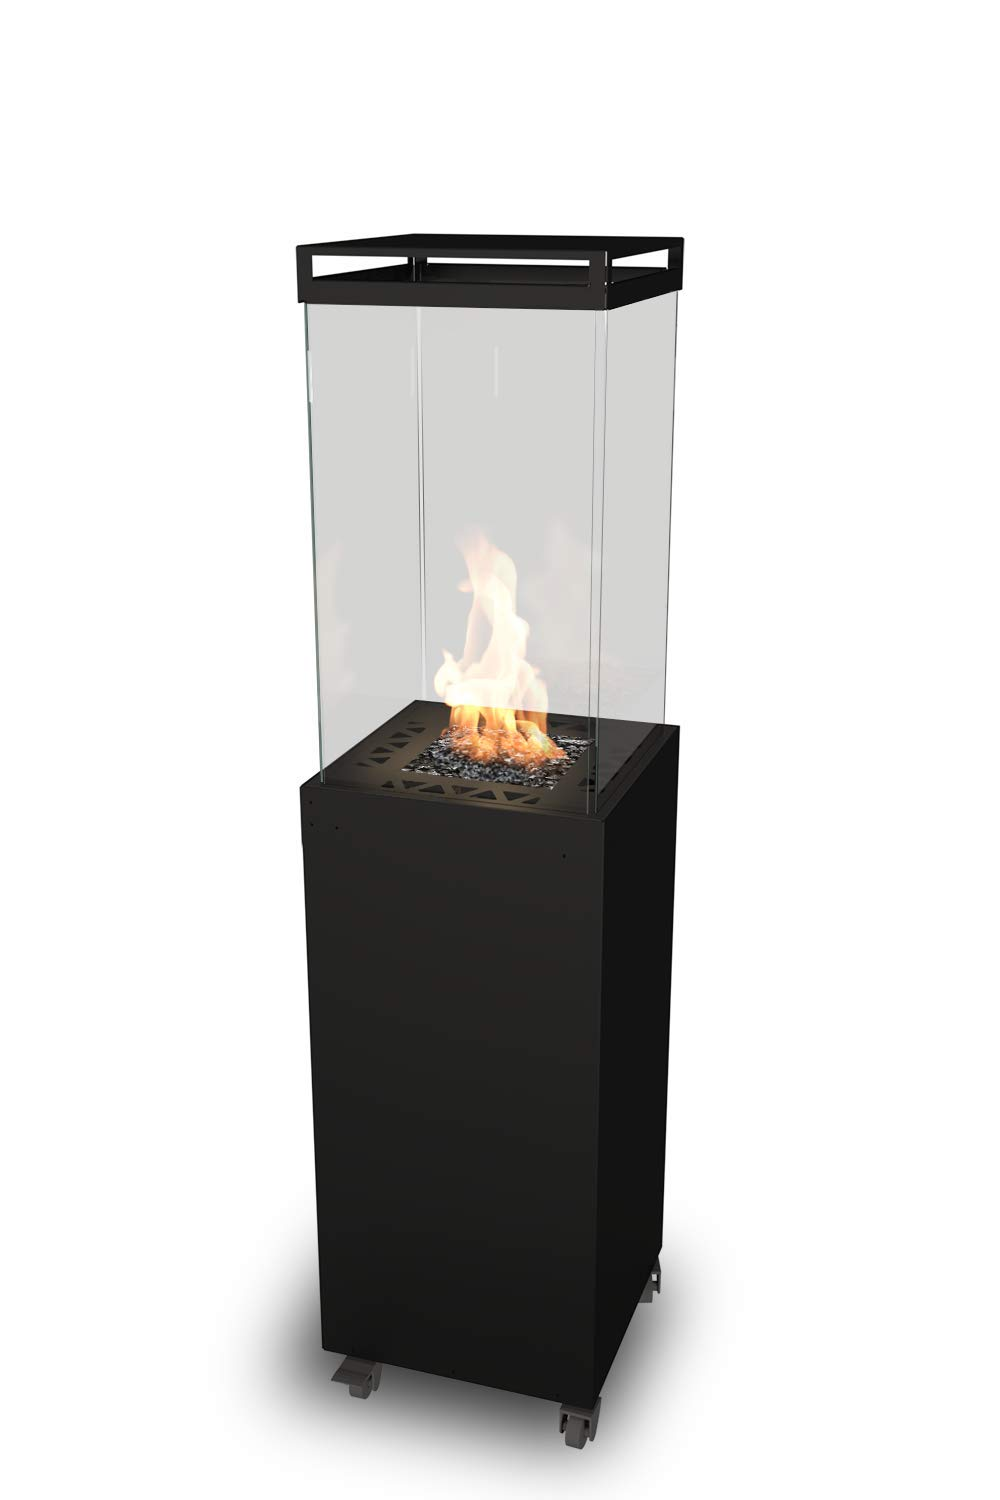 Planika Lighthouse (Black) - Freestanding Portable Outdoor Gas Patio Heater - 55 Hours Burning Time, 10kW Heat Output - Patio and Garden Accessories - Home Gift Ideas